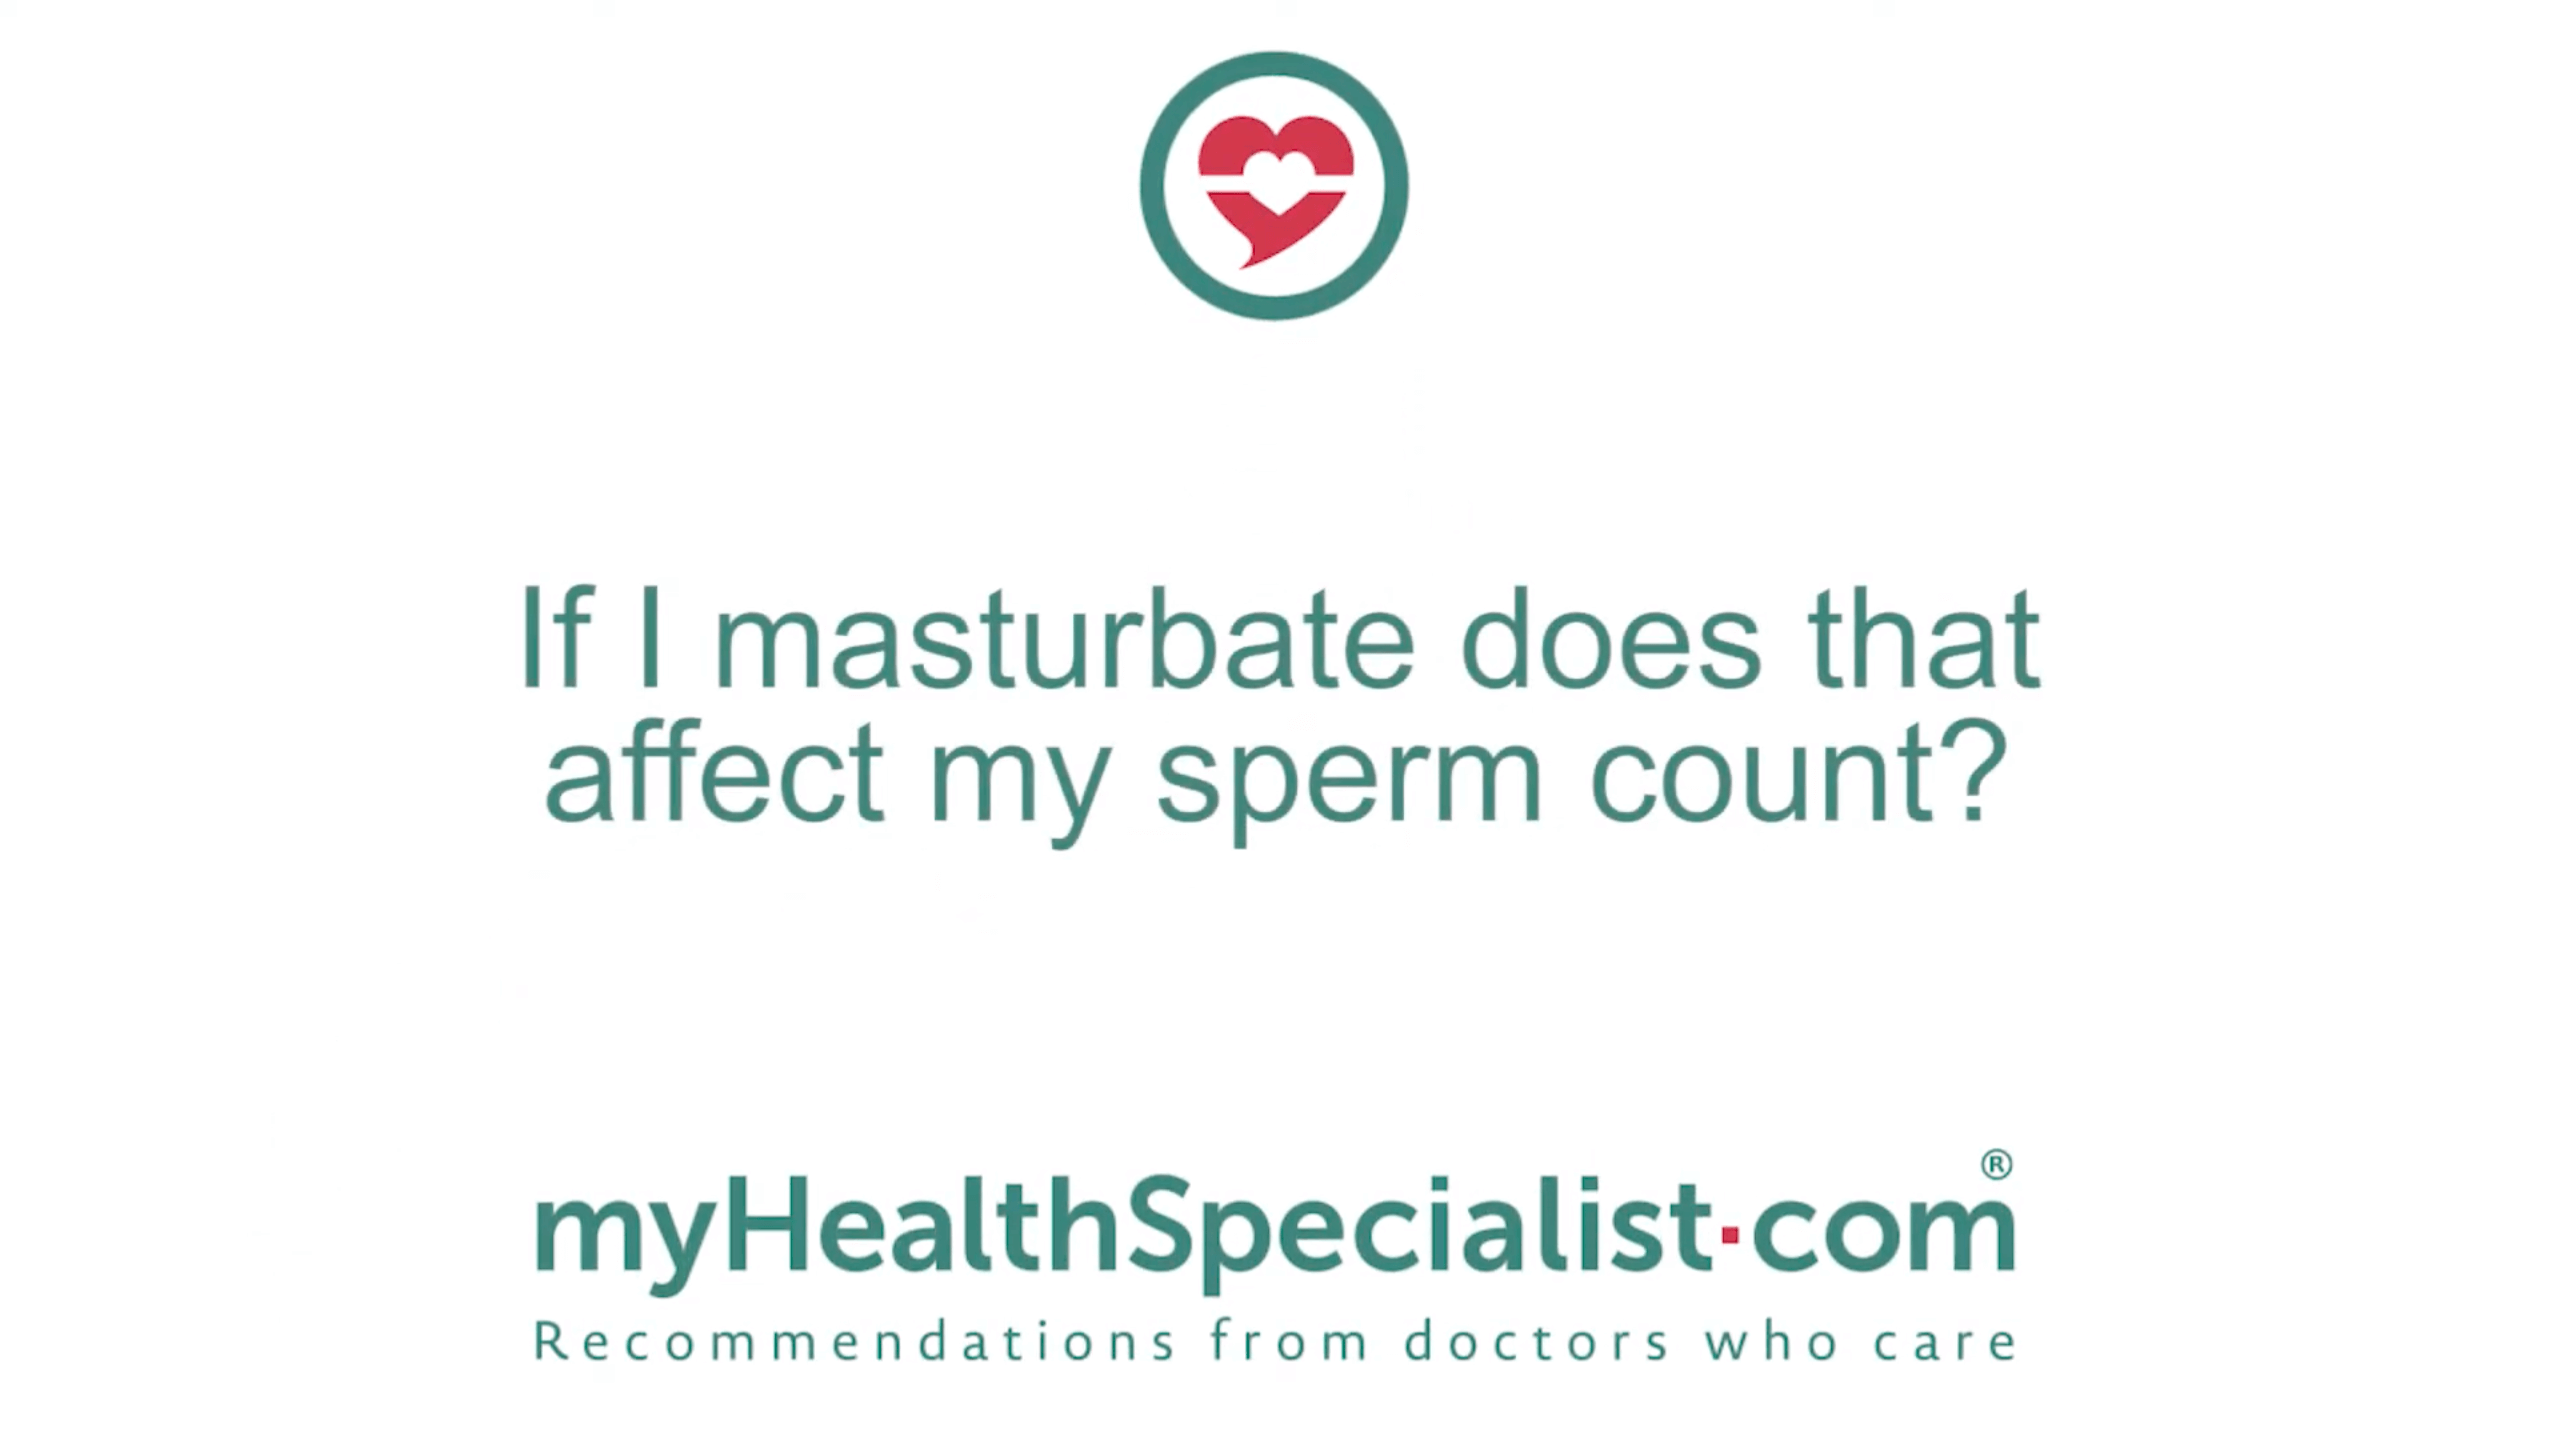 If I masturbate does that affect my sperm count?